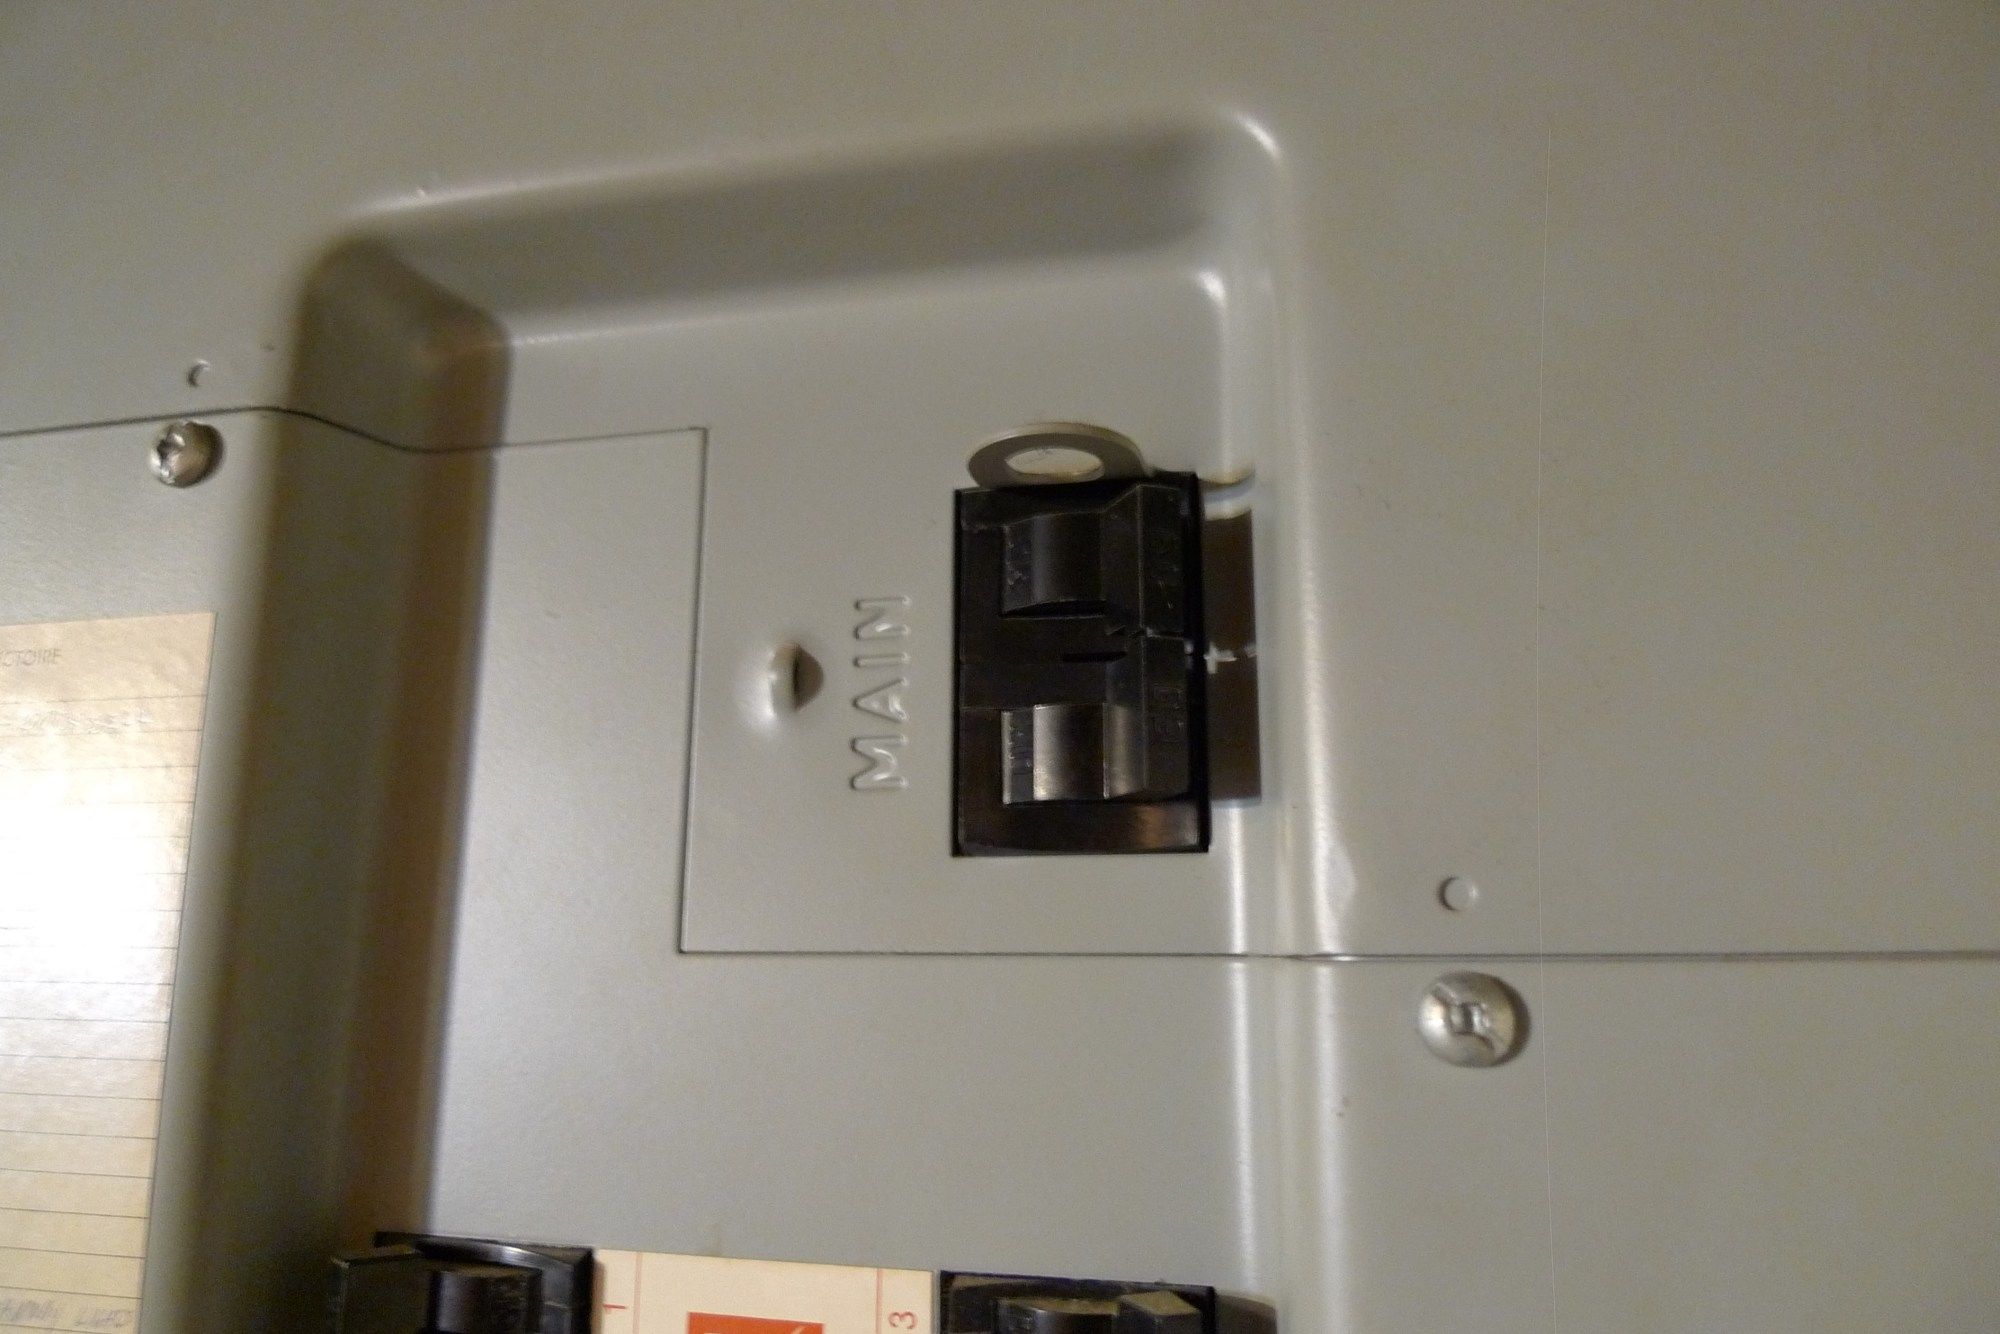 hight resolution of 60 amp breaker in a townhouse in ekota an electrical panel